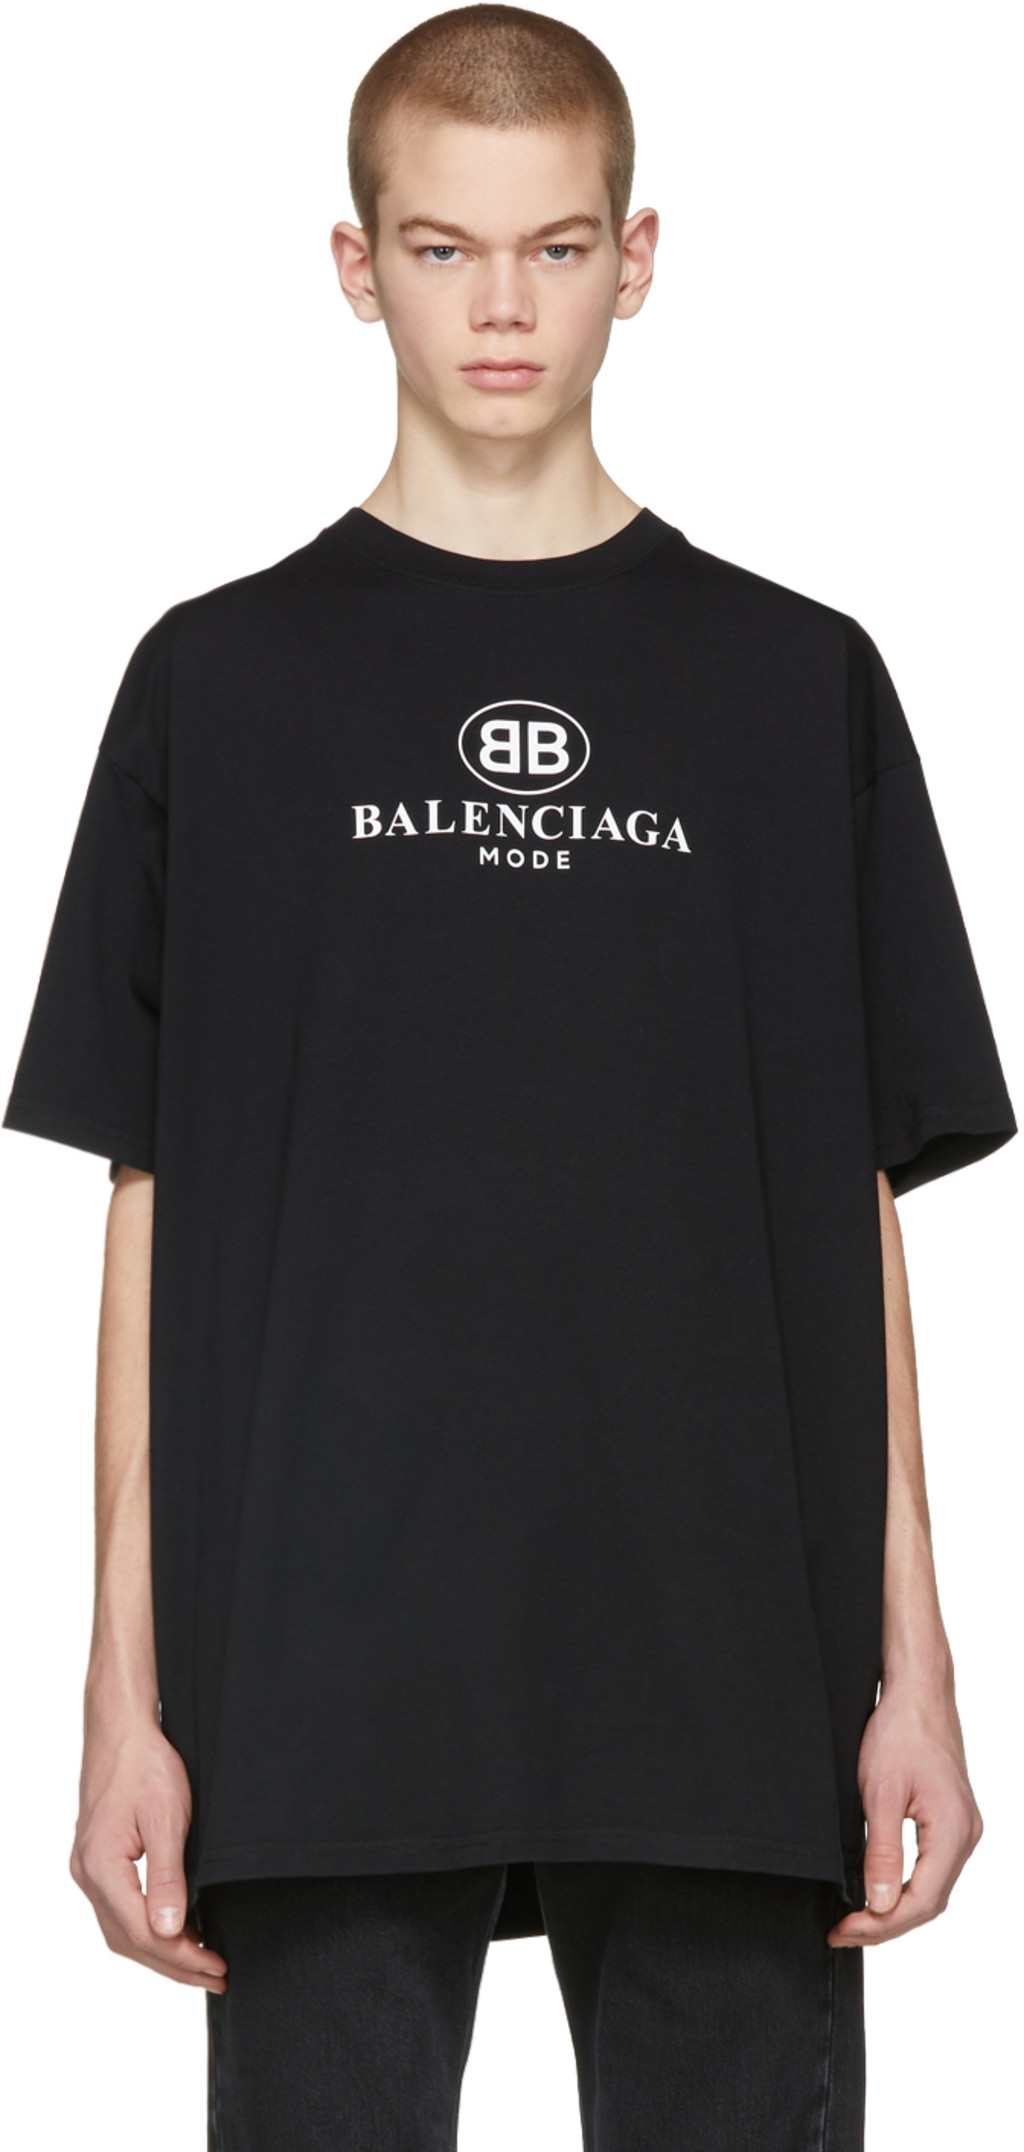 balenciaga t shirt mens black